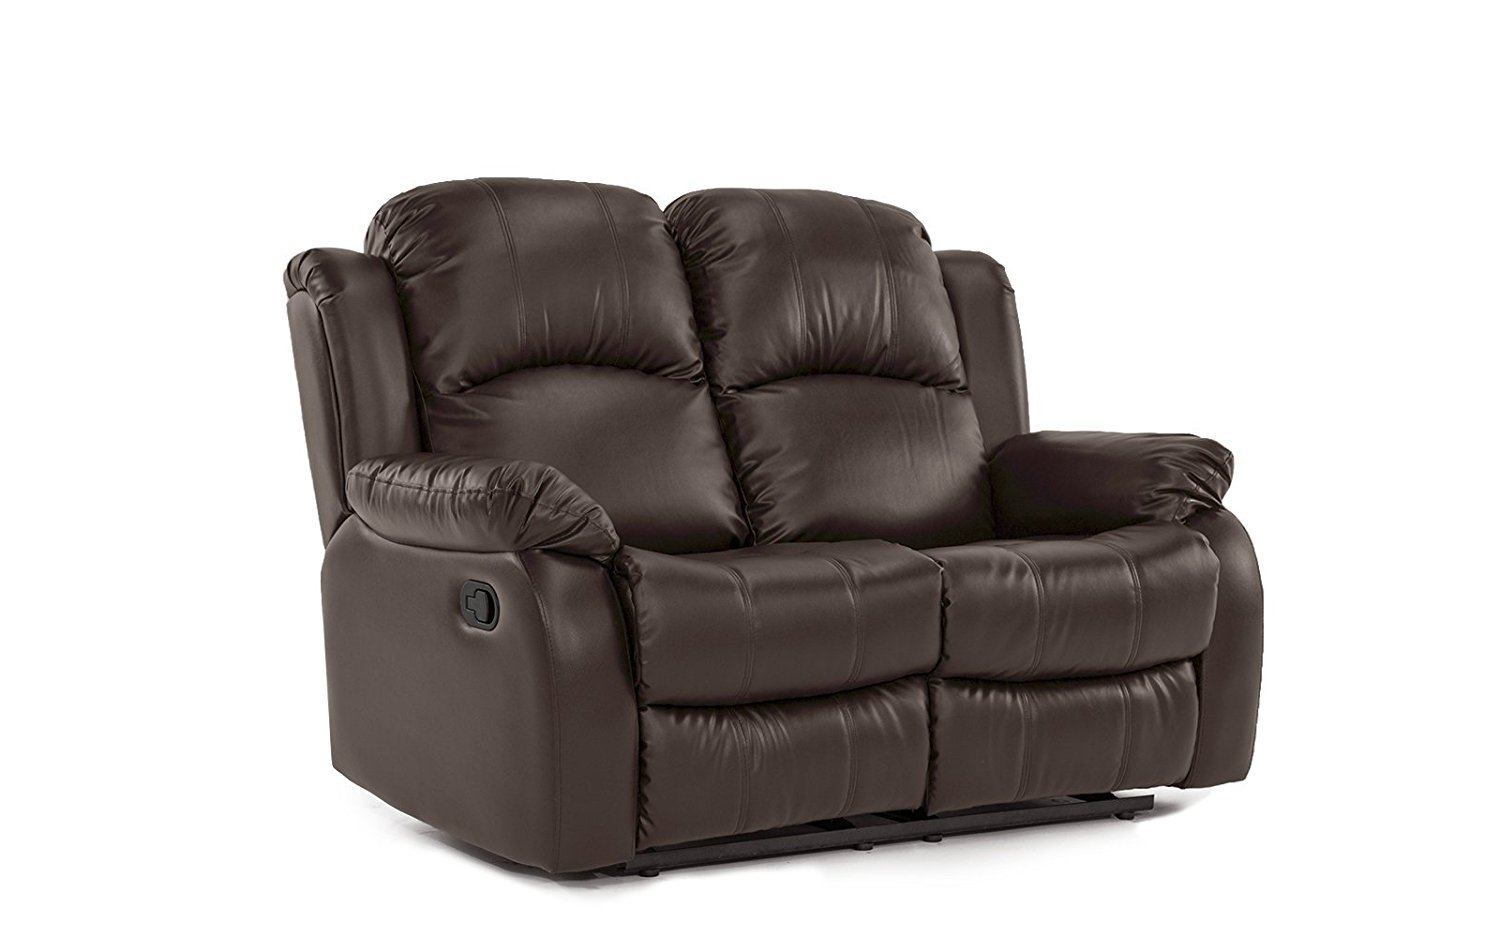 Details about Classic and Traditional Bonded Leather Recliner Chair, Love  Seat, Sofa Size -...